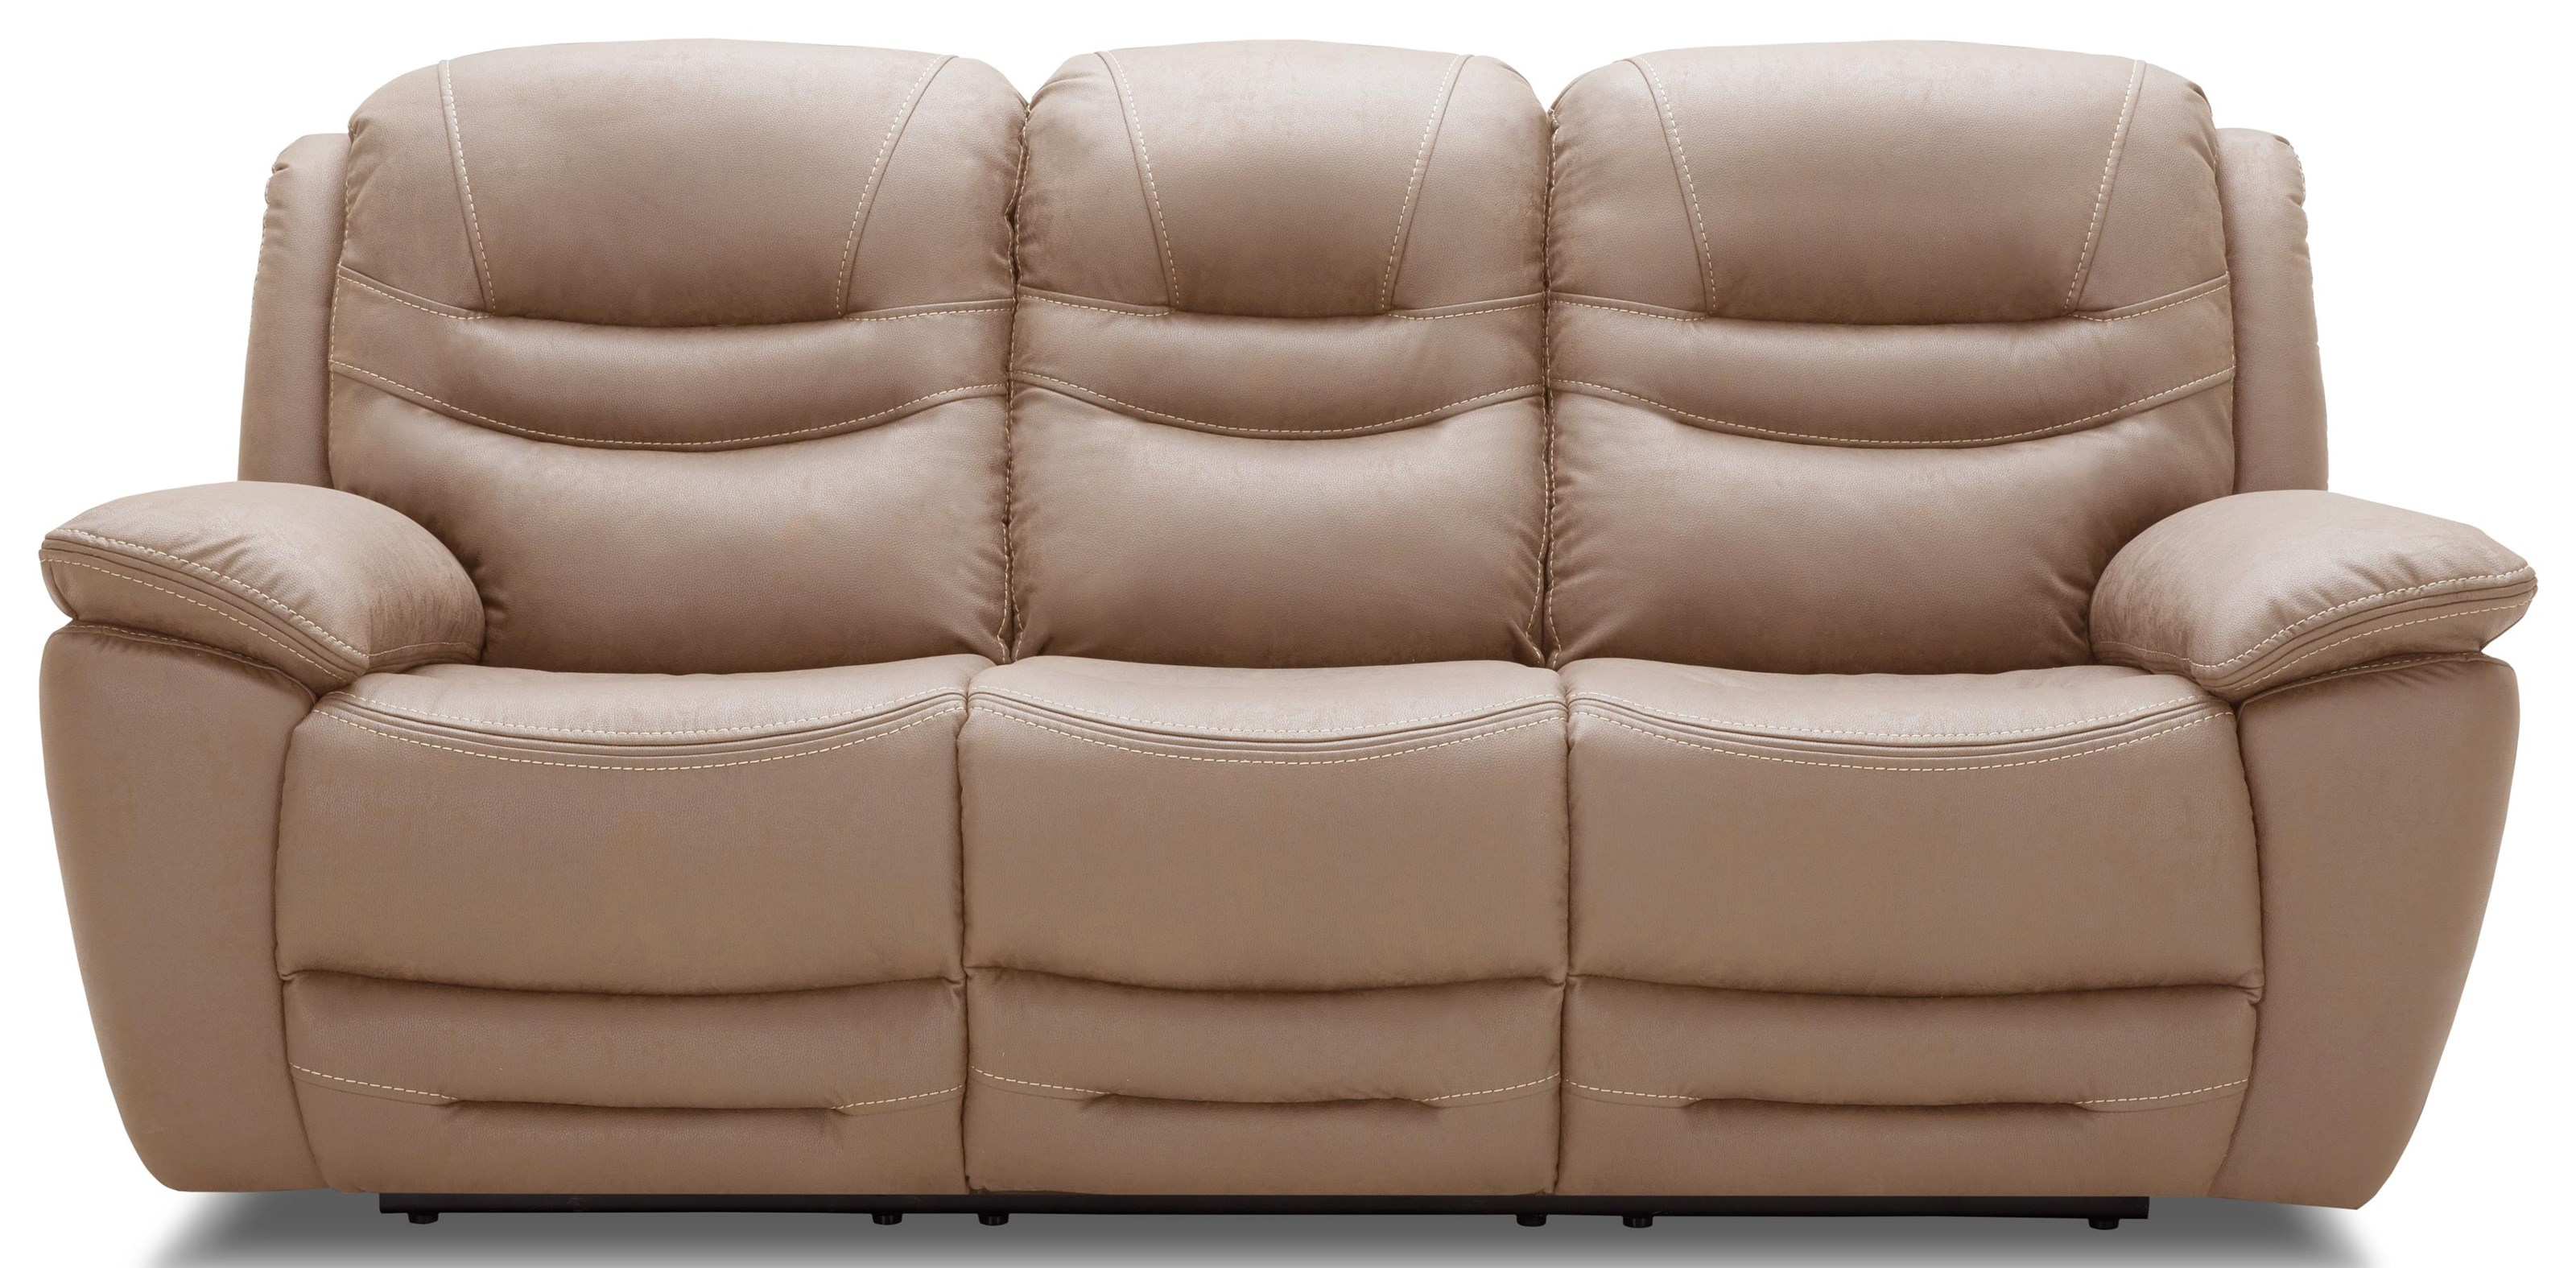 KM083 Reclining Sofa by Kuka Home at Beck's Furniture